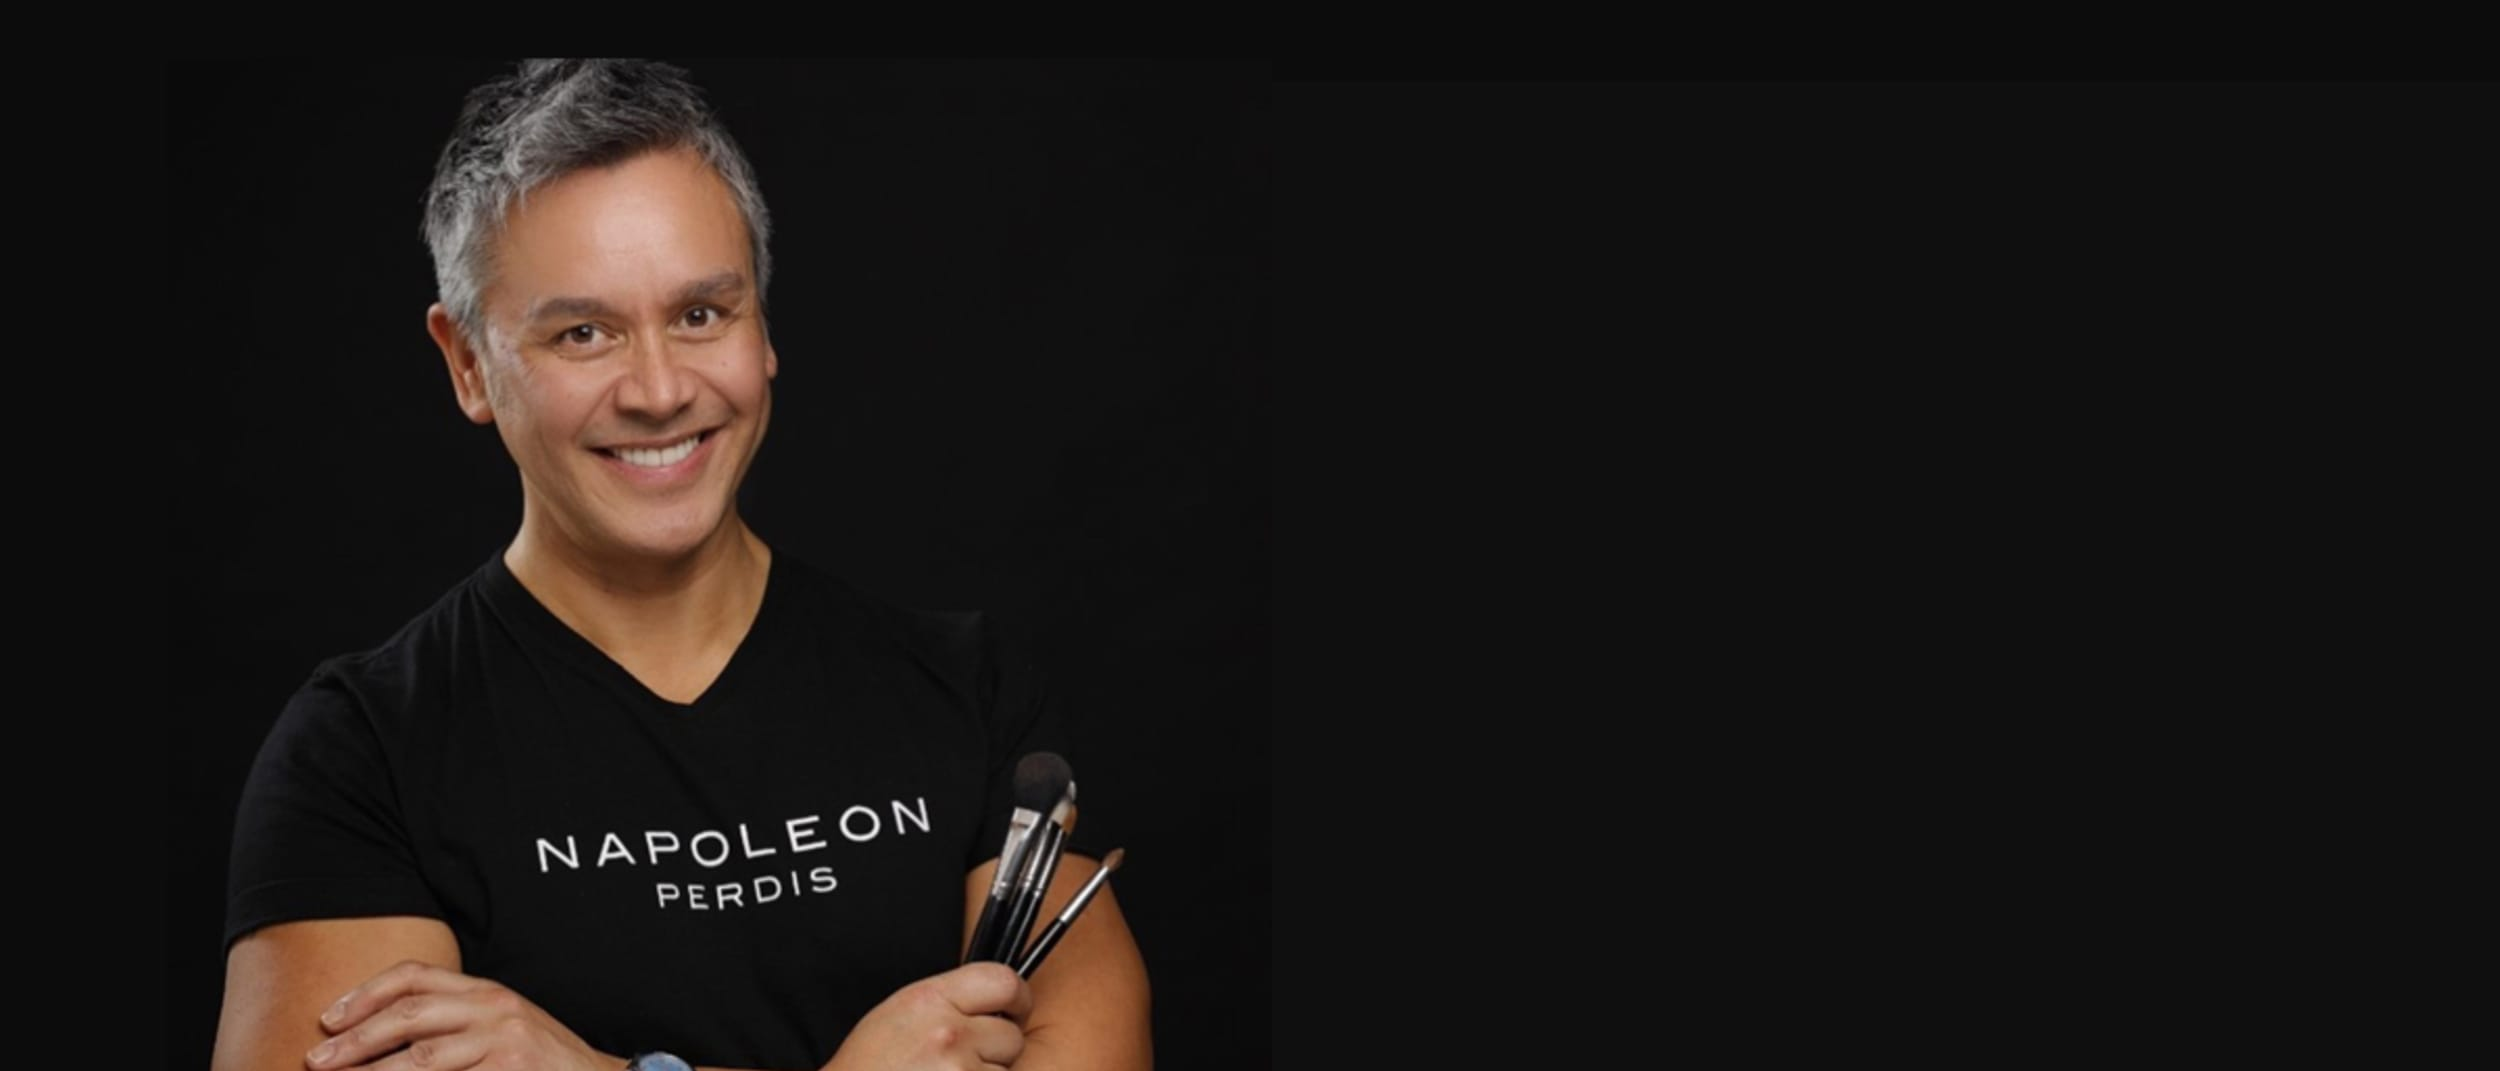 Exclusive master class with Napoleon Perdis [Booked out]